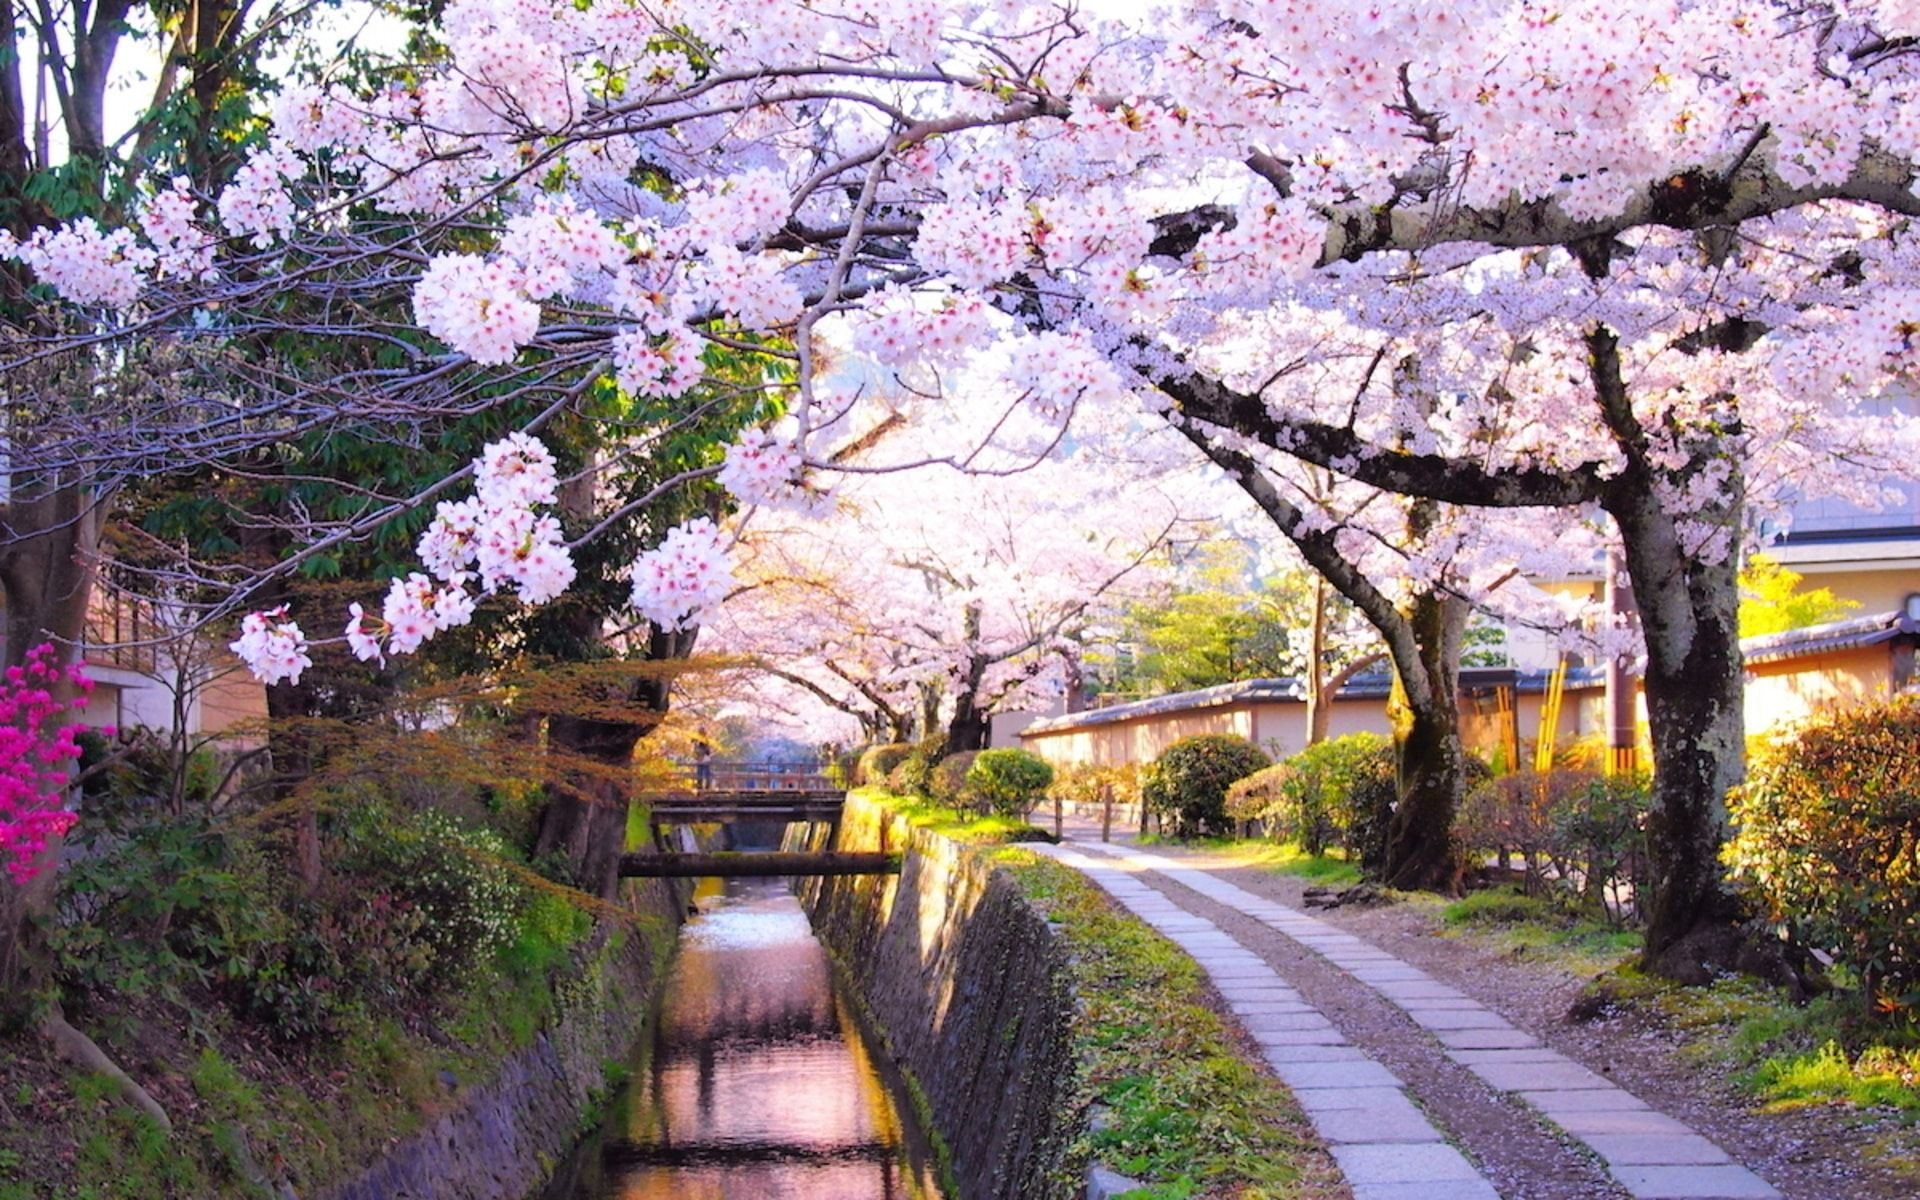 Tokyo Geisha Girl Wallpaper 1920x1080 The Hunt For Sakura In 2018 Here Are The Places In Japan